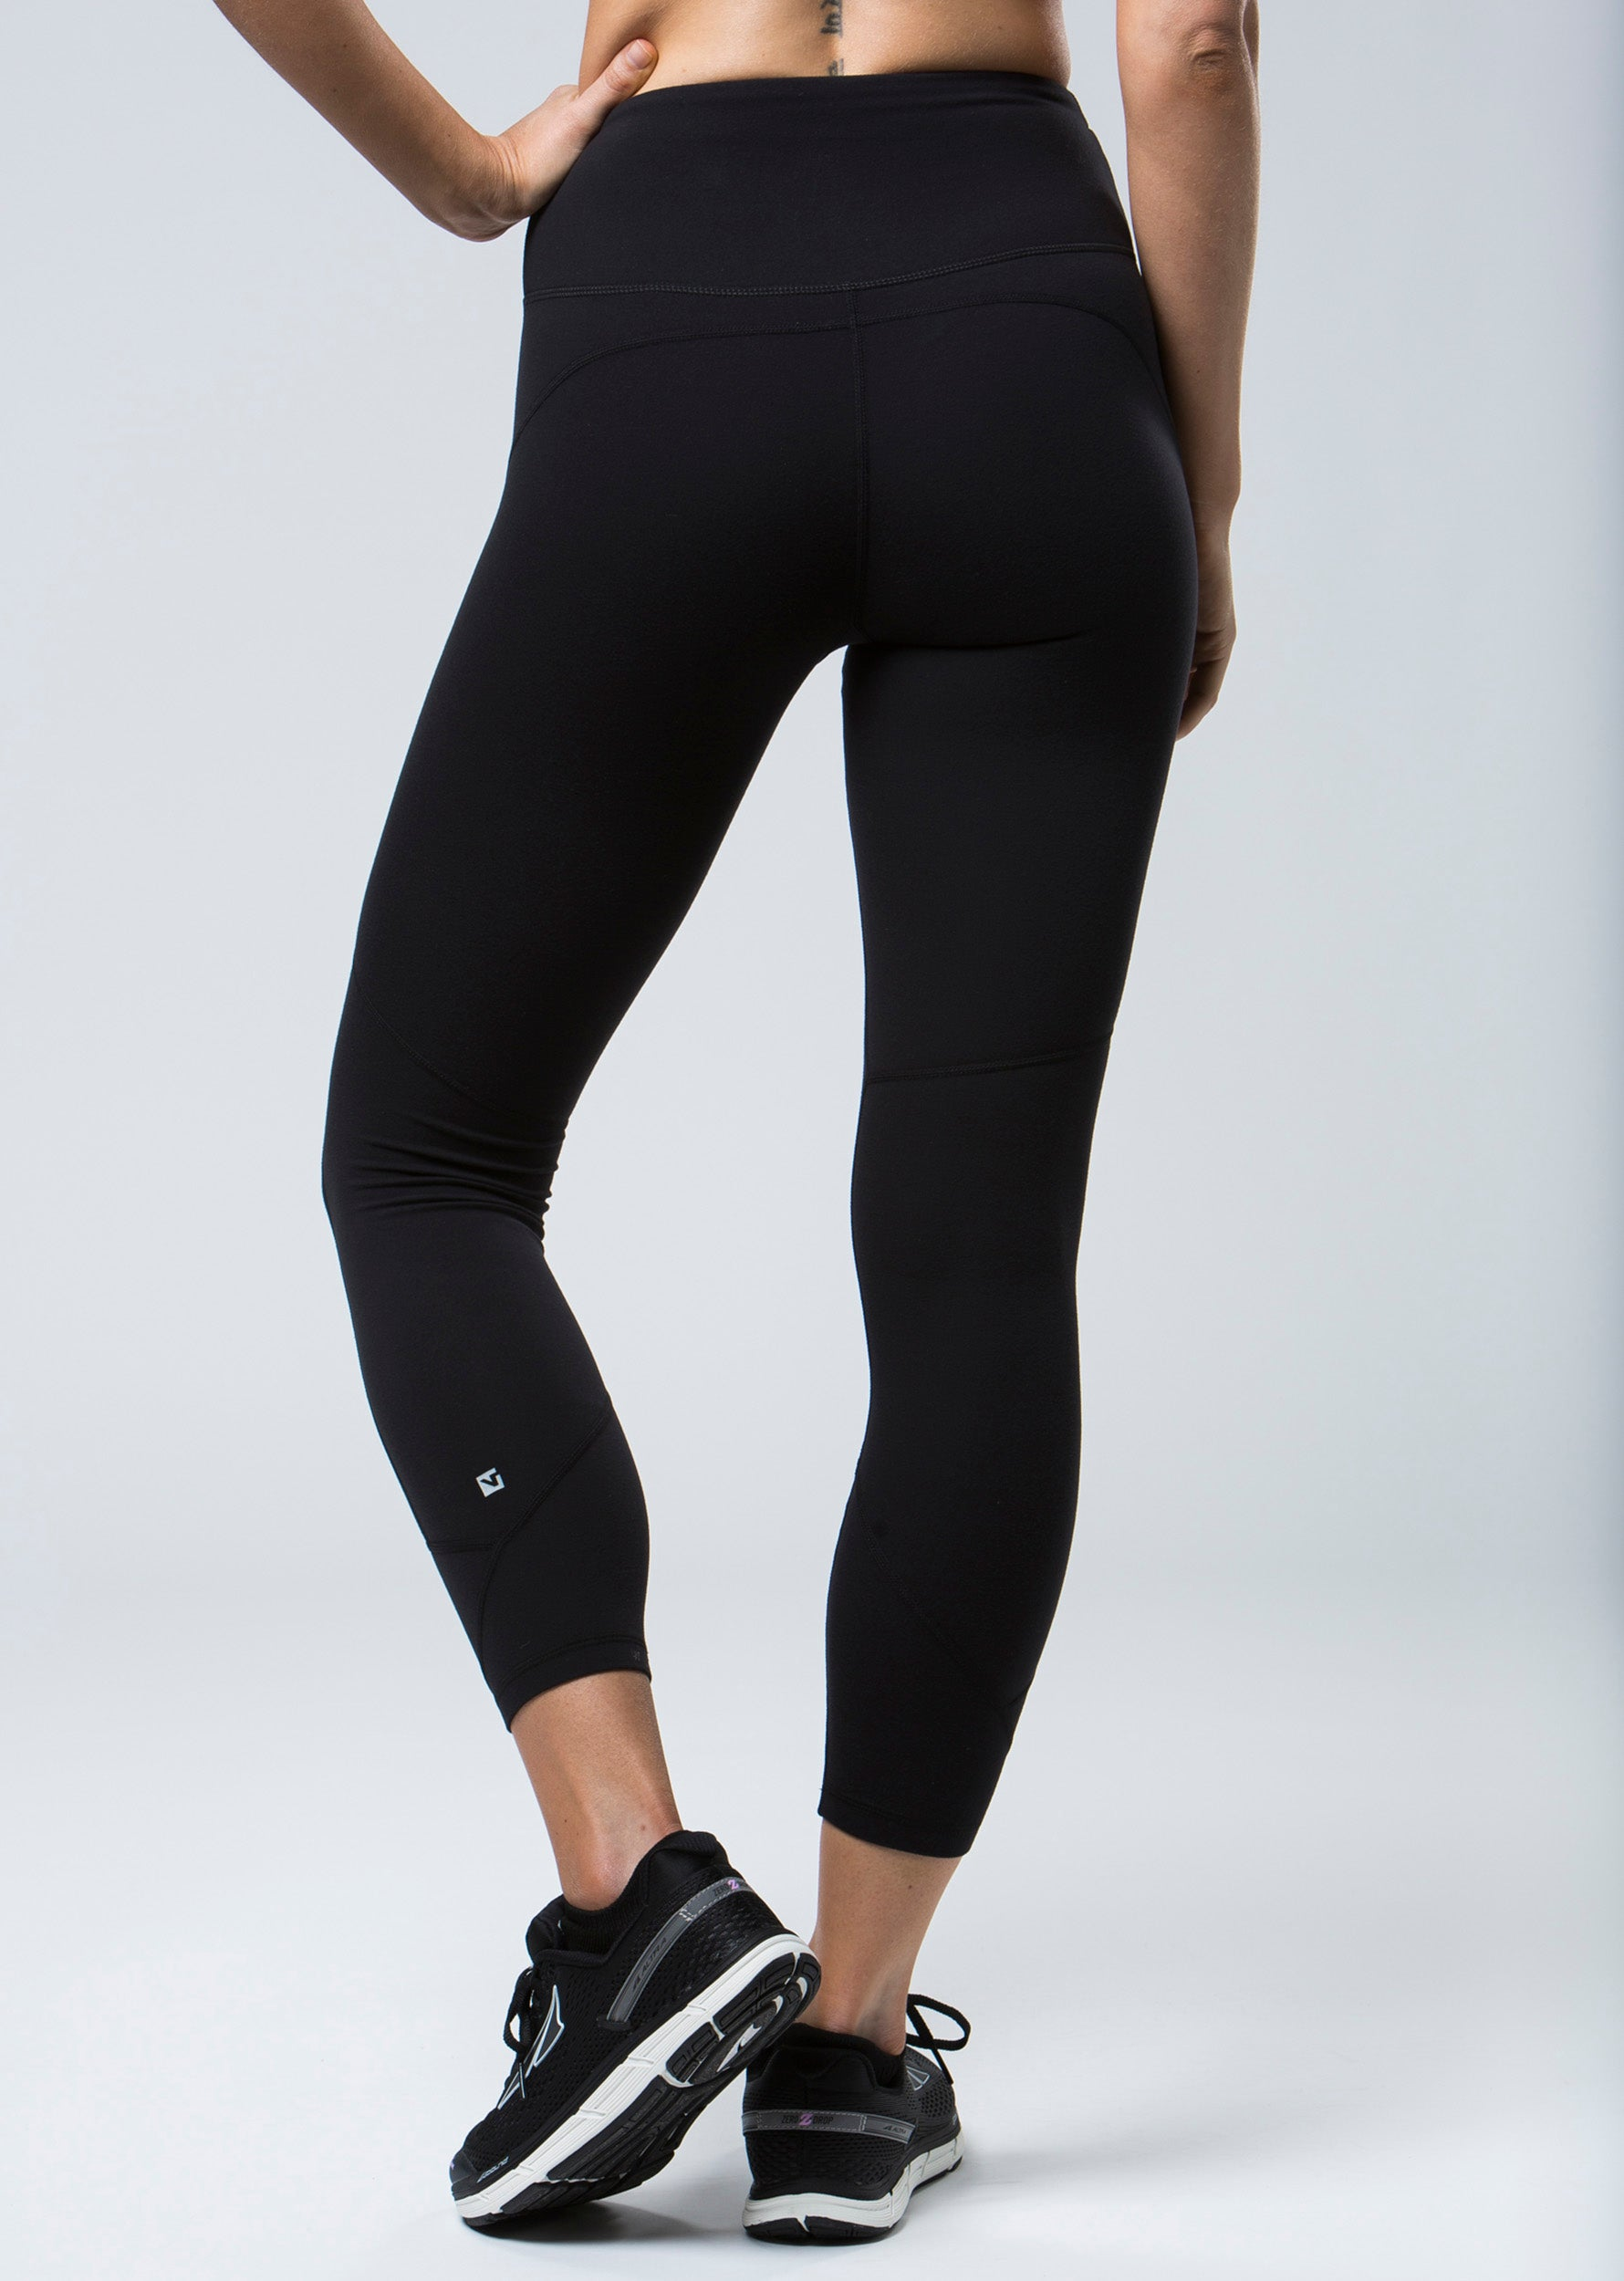 Excel 7/8 Legging - Black